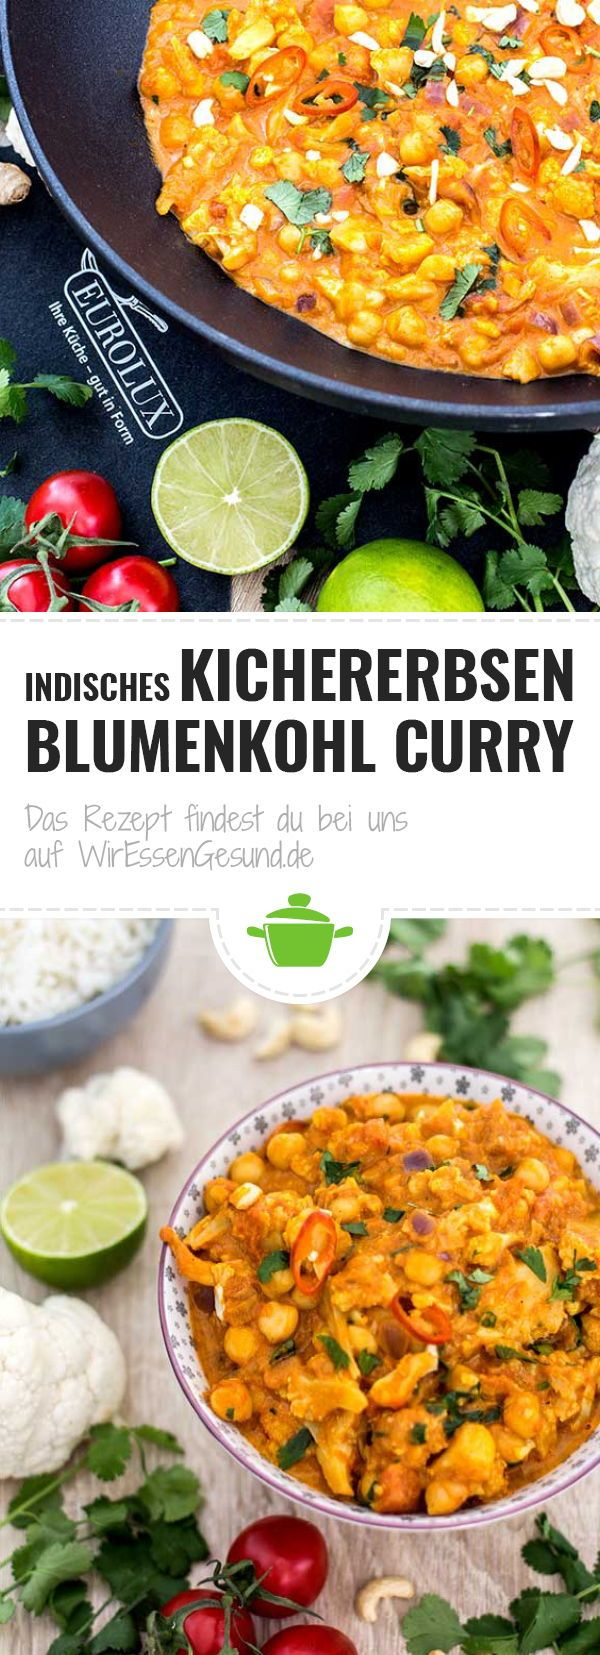 Indisches Kichererbsen Blumenkohl Curry